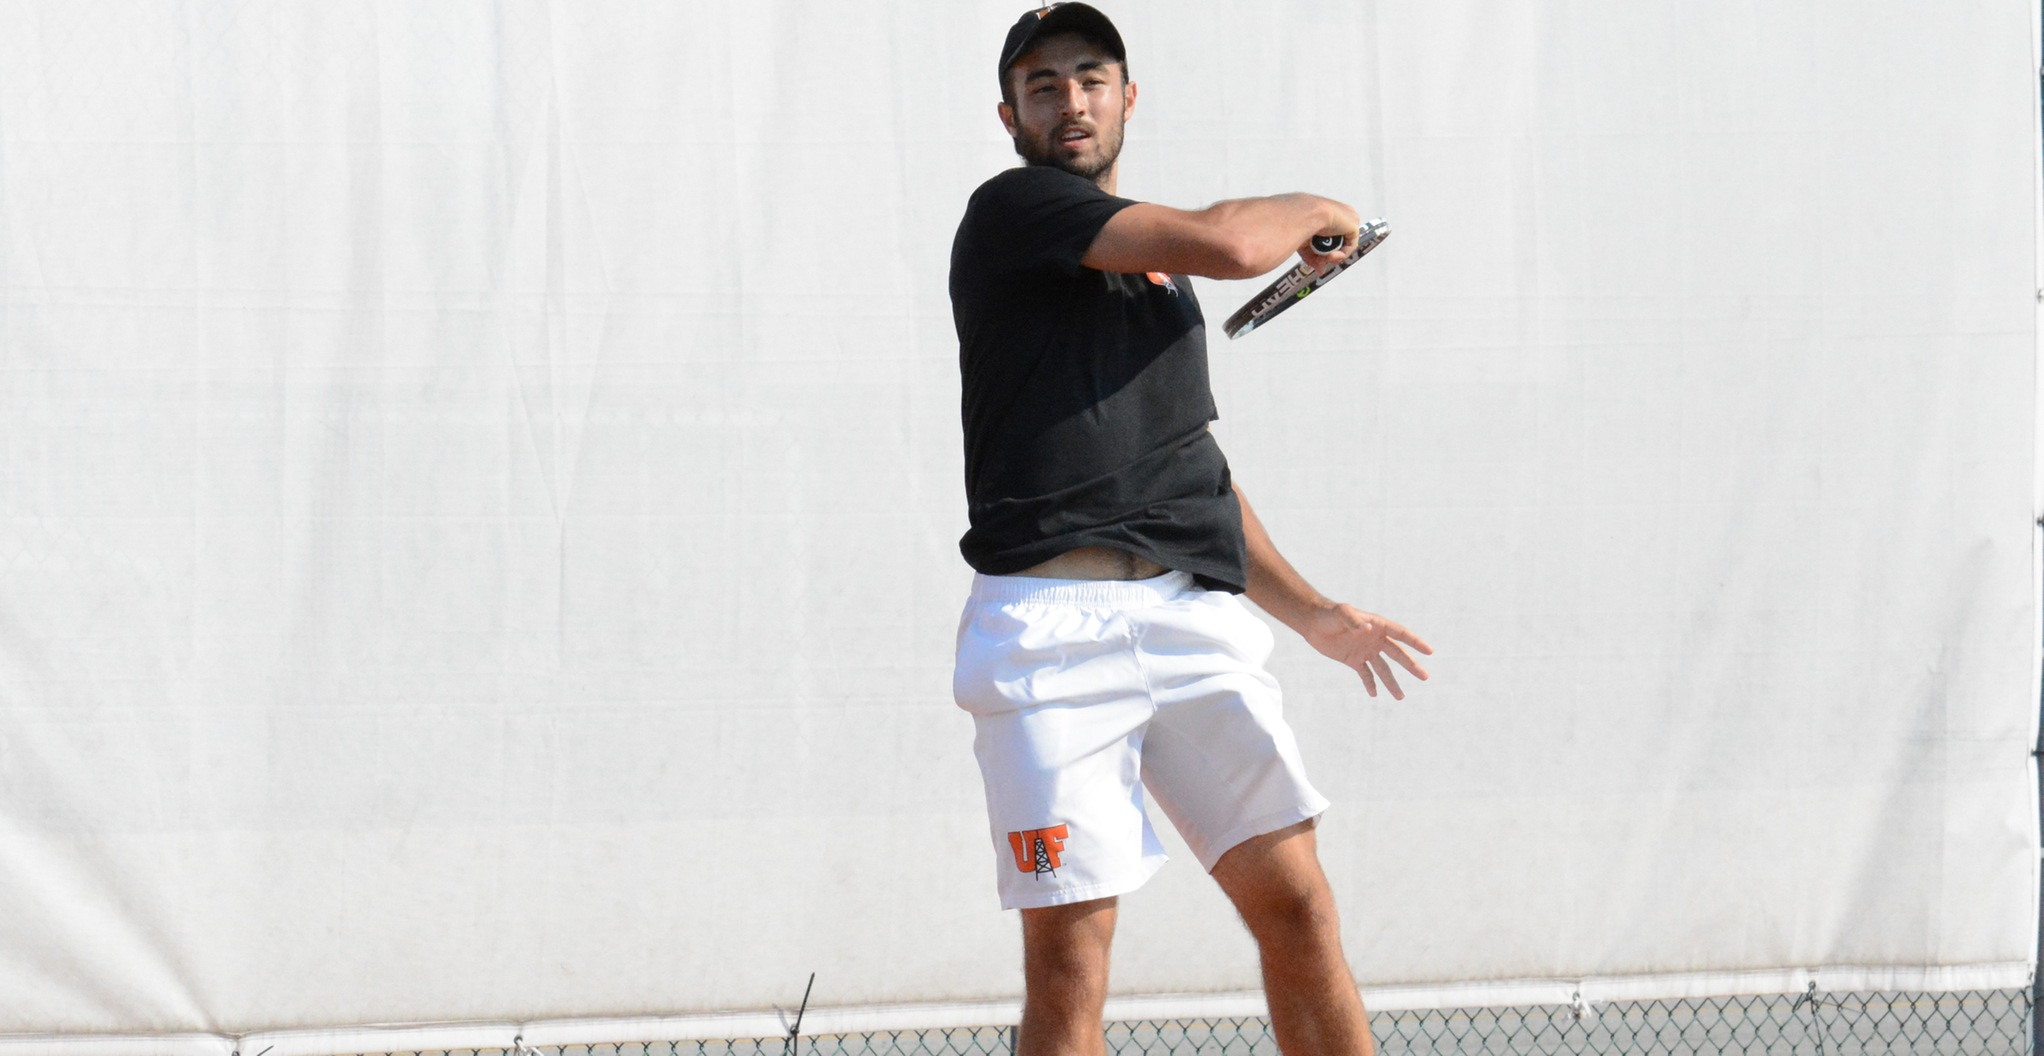 Oilers Complete Day 2 at ITA